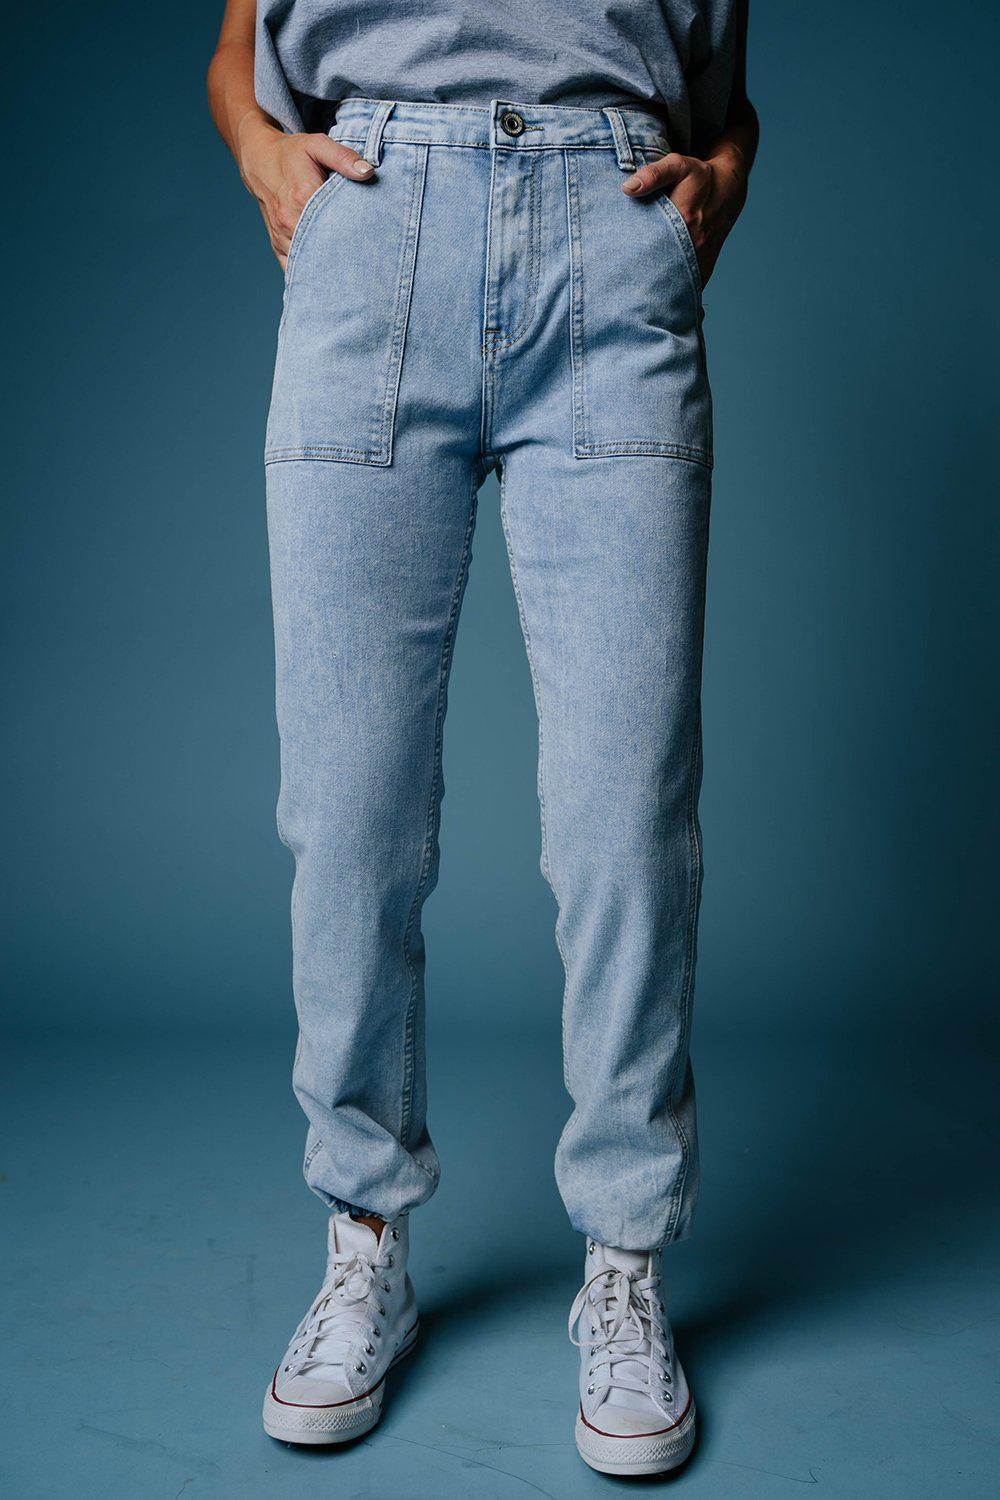 best_seller, Jump Around Denim Joggers, Bottom, women's clothing, dresses, skirts, coats, jackets, shoes, boots, tops, tee shirts, jeans, free people, levi's, rollas, jumpsuits, bottoms, tops, sweaters, pullovers, pants, shorts, sweats,.